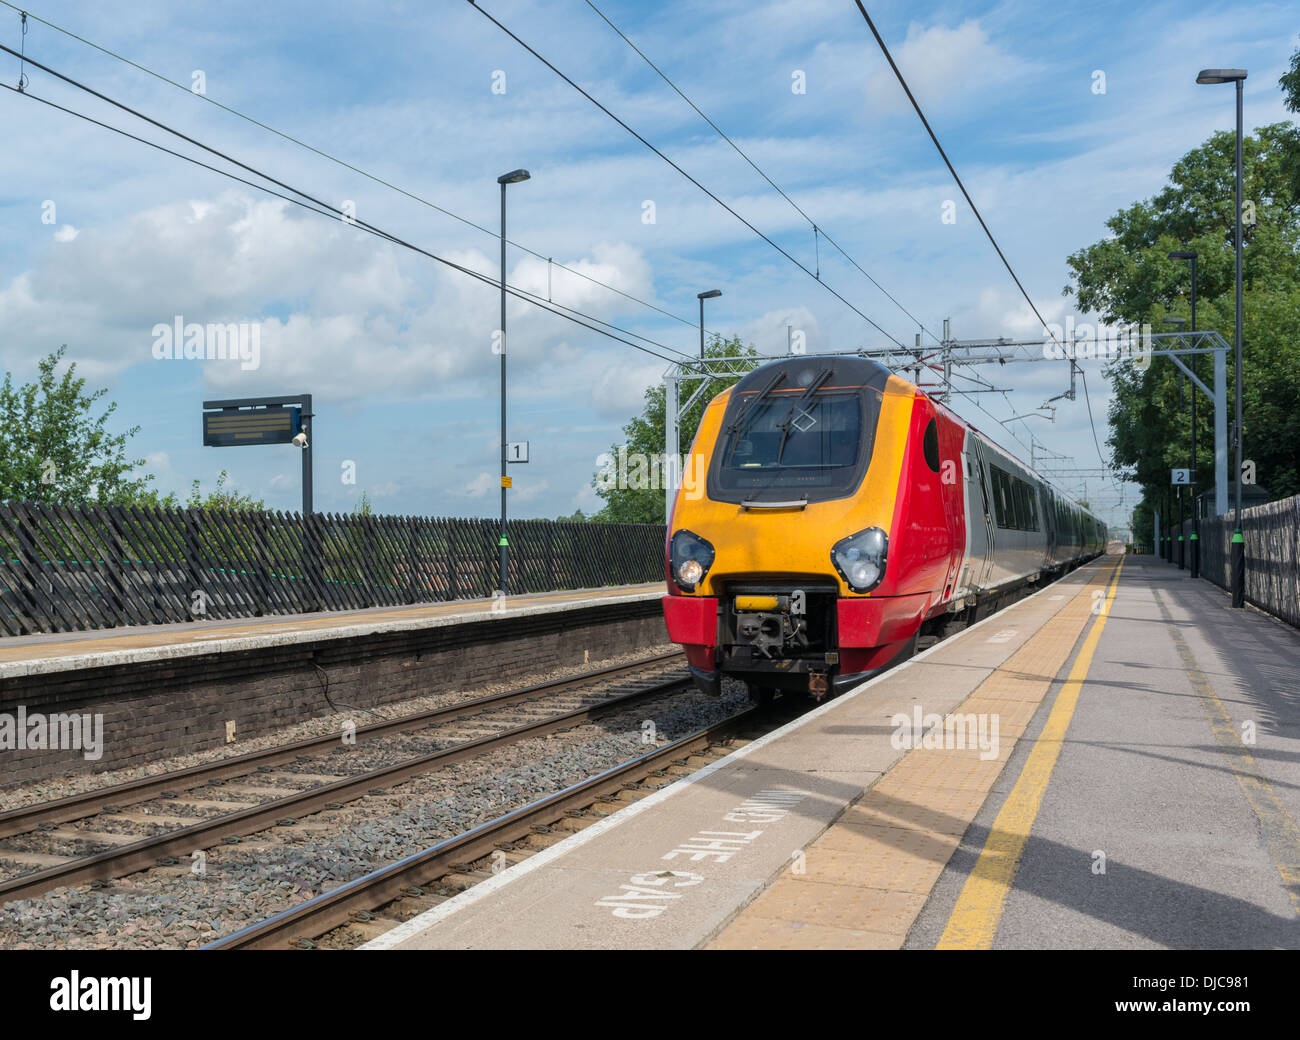 A high speed train passing through a station, England - Stock Image